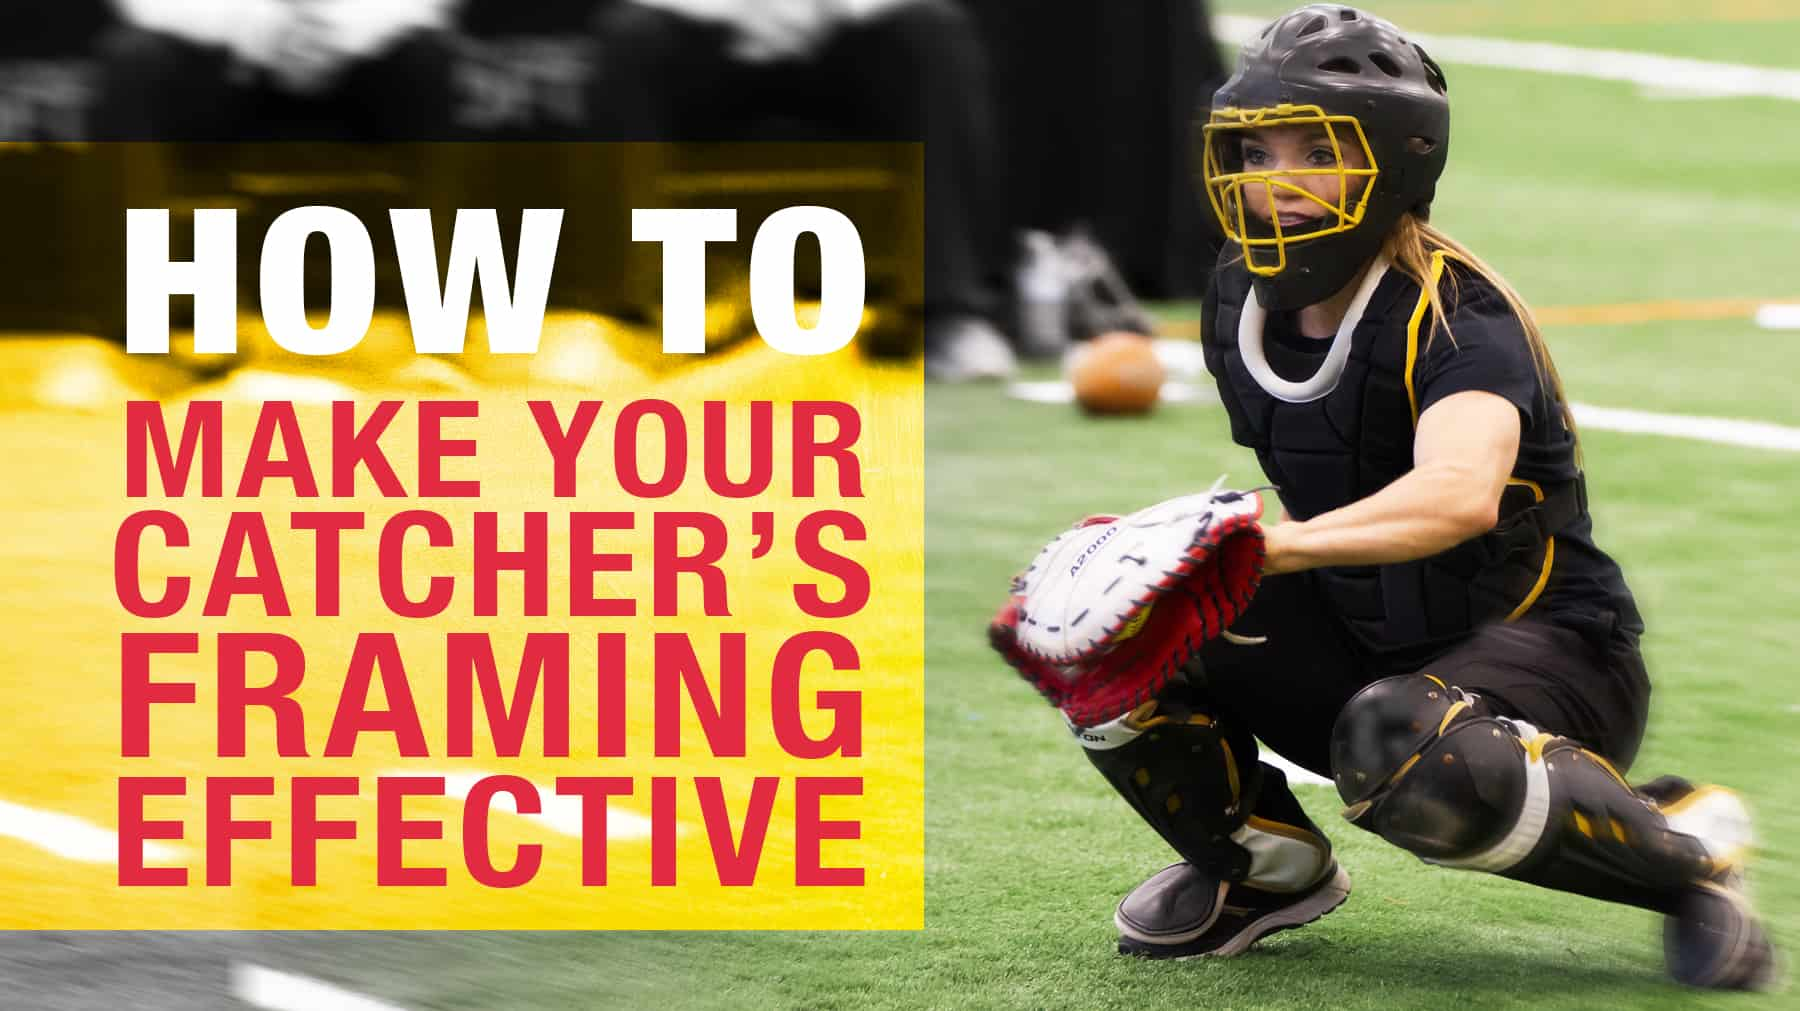 Catching: How to make your catcher\'s framing effective